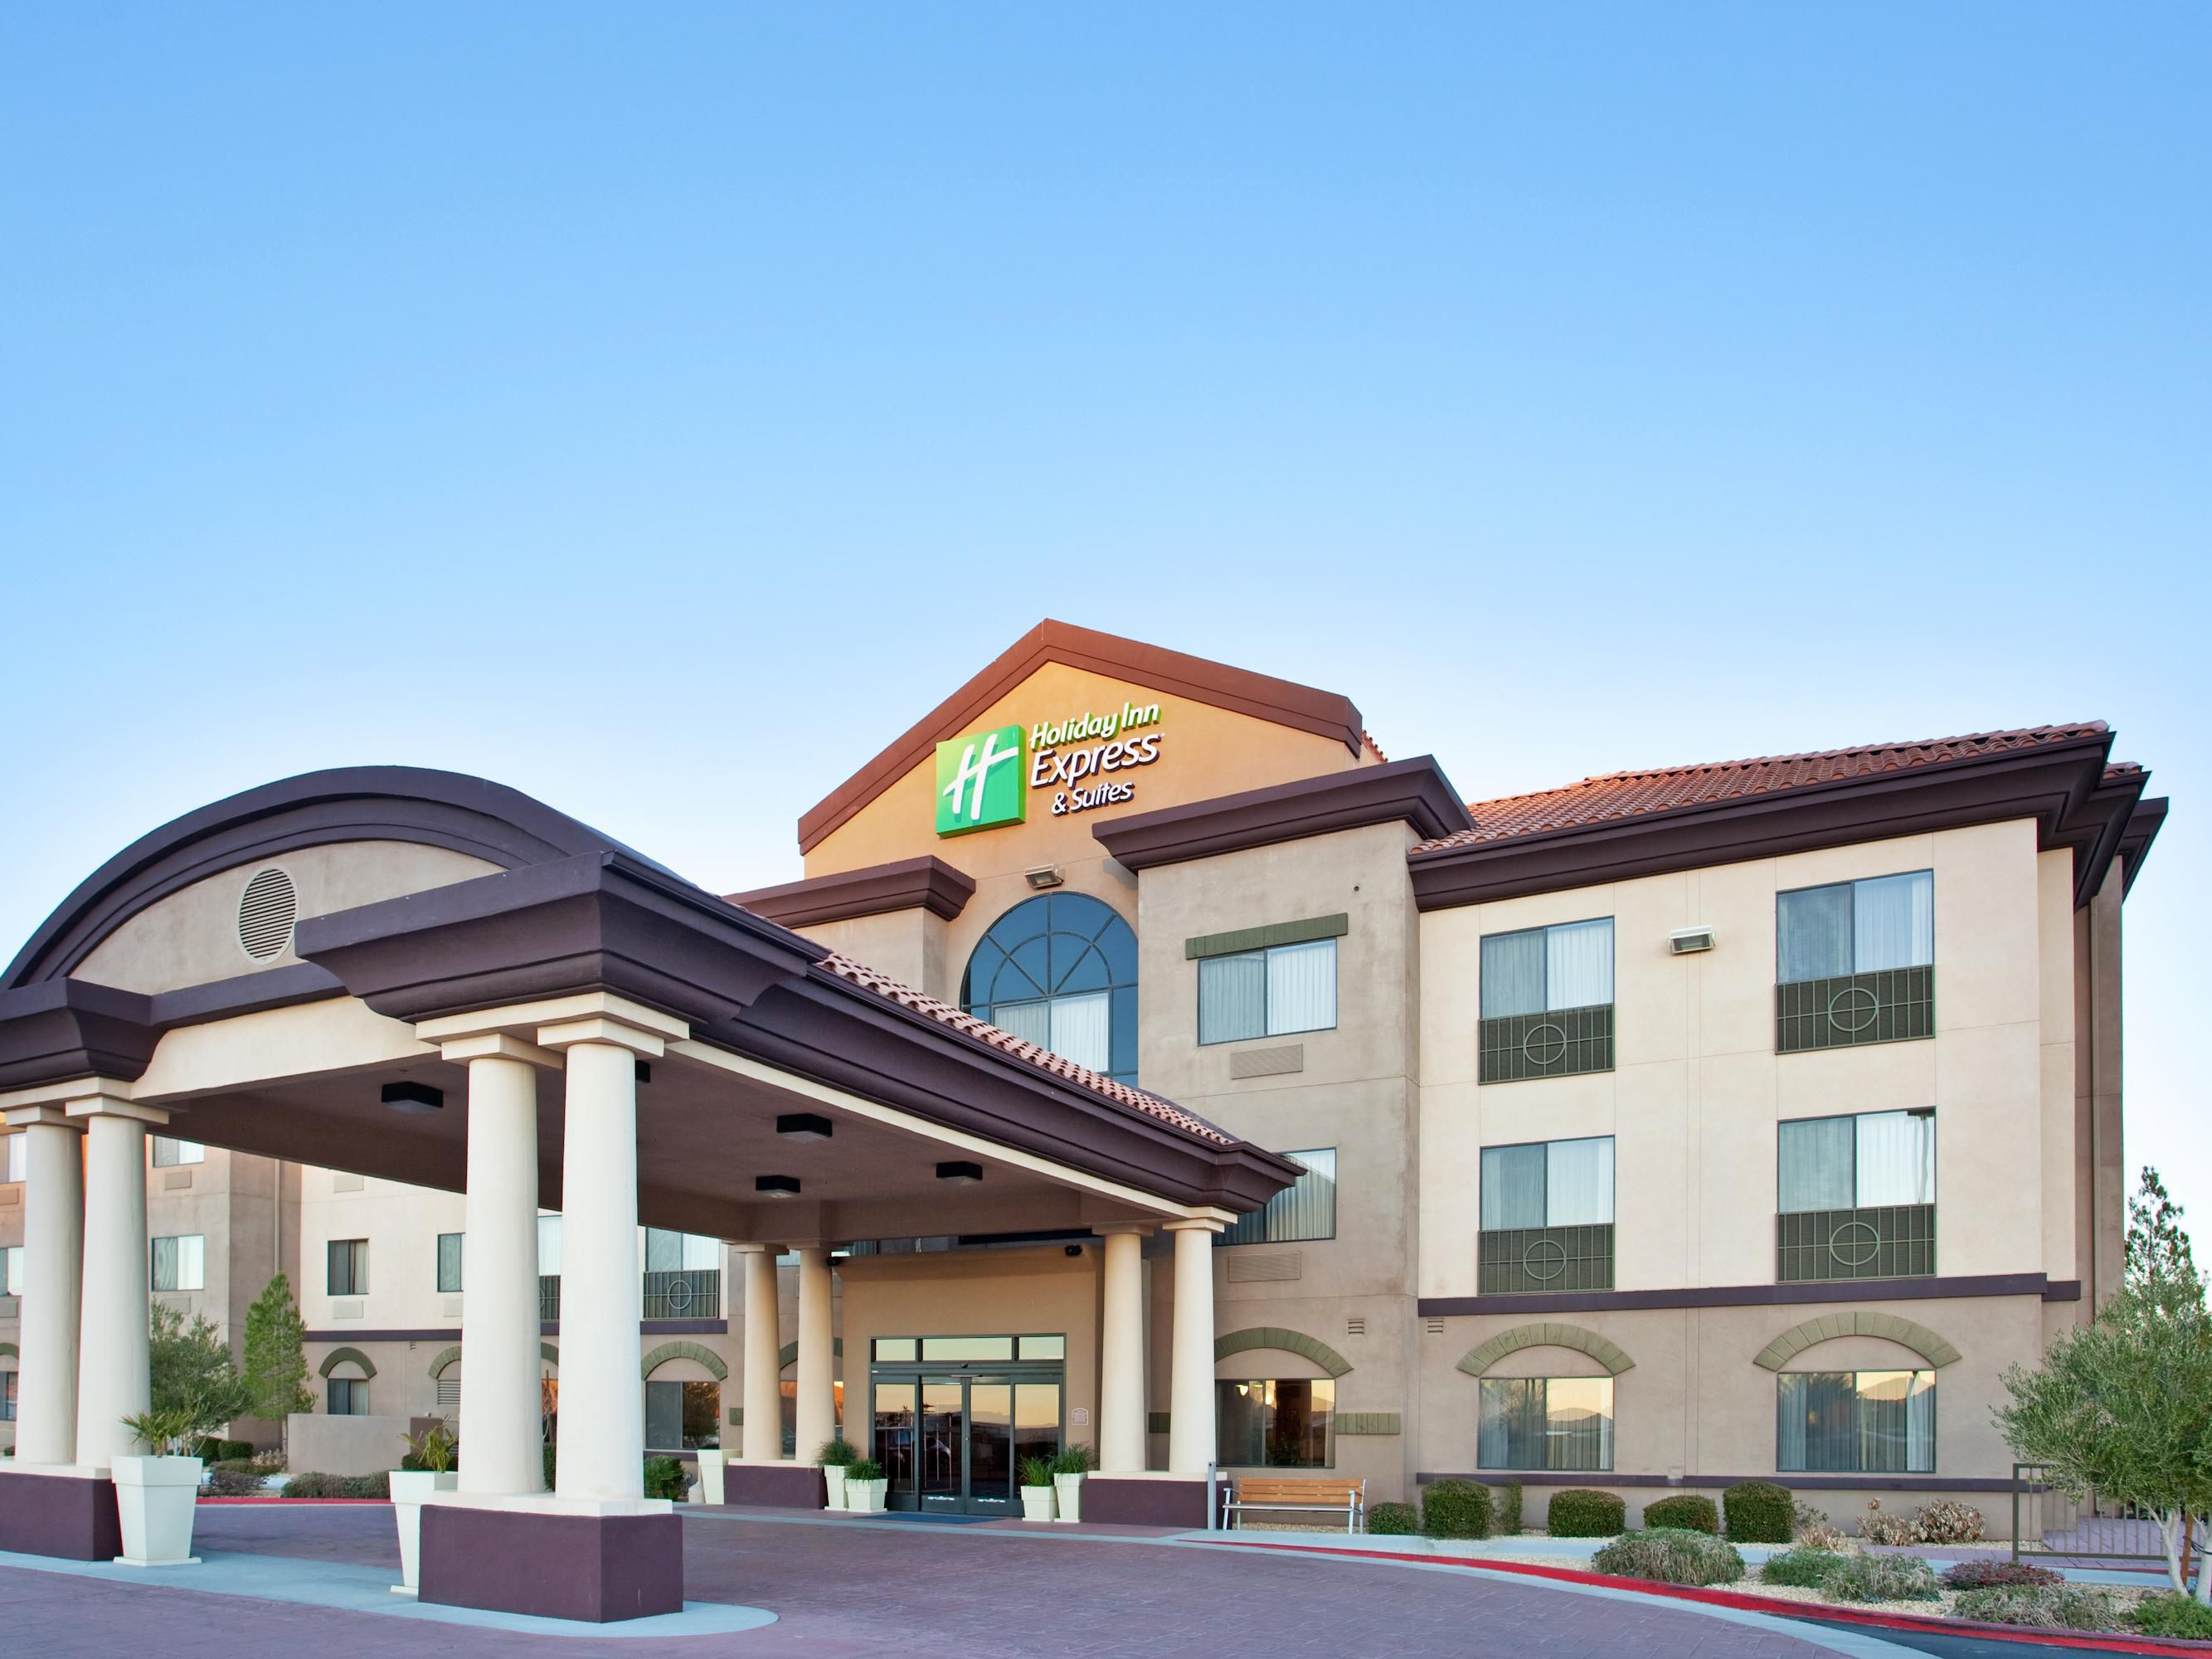 Holiday Inn Express Inn & Suites Outlet Center Front Entrance 2